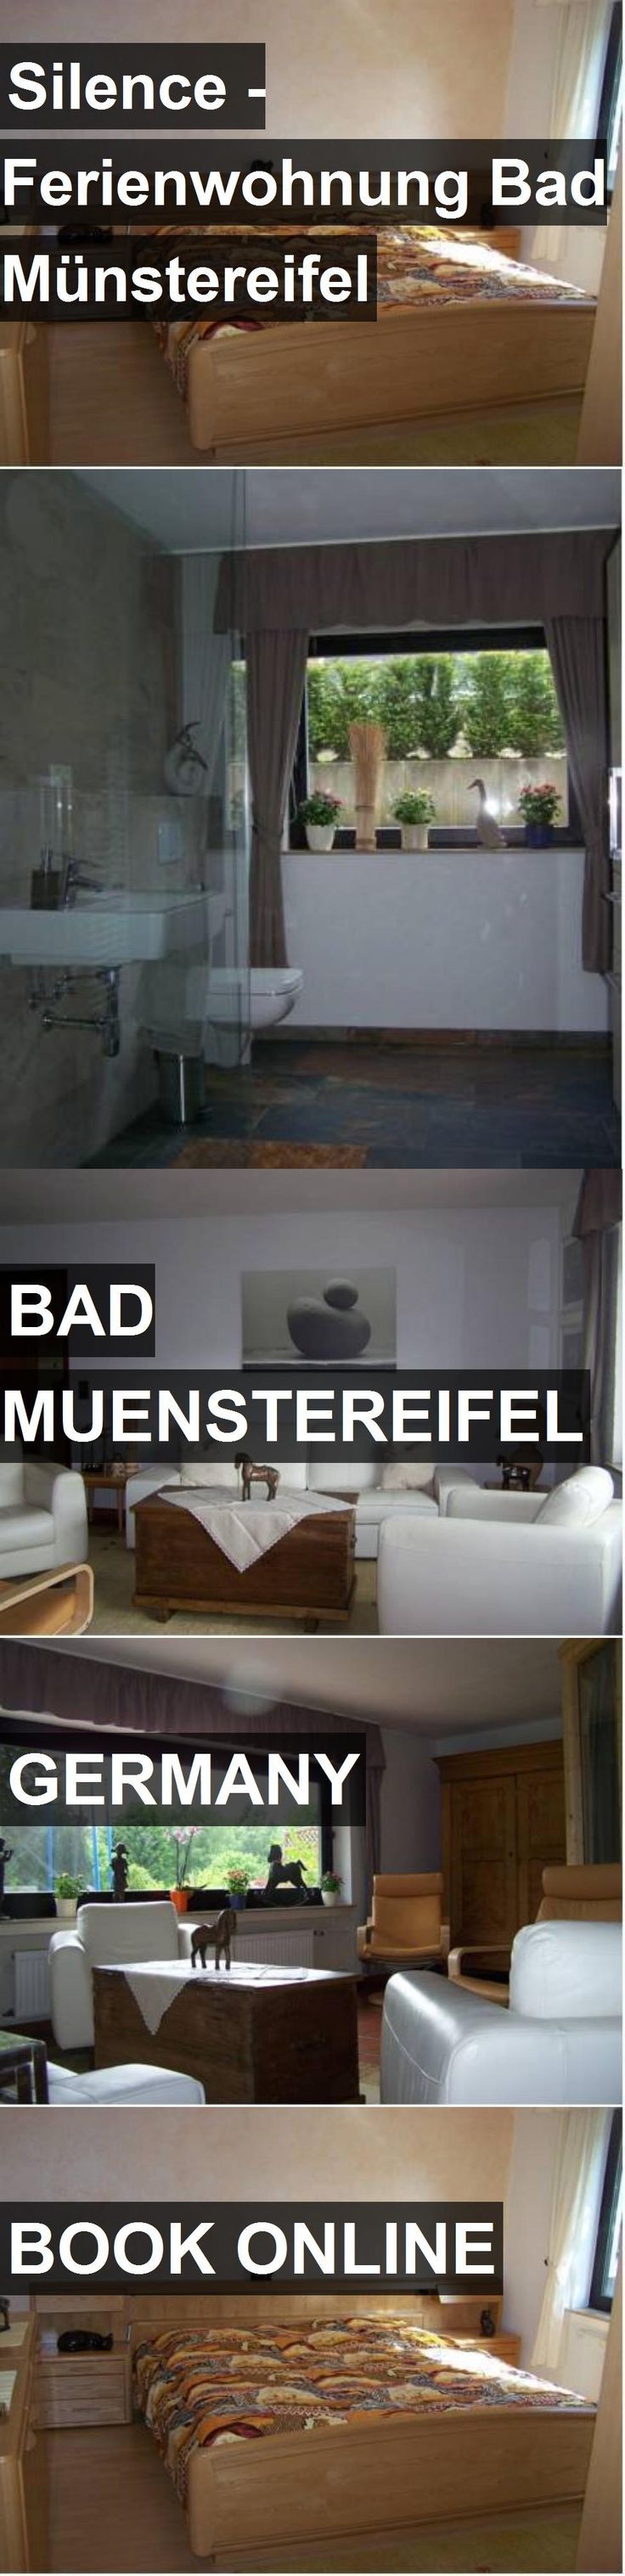 Hotel Silence - Ferienwohnung Bad Münstereifel in Bad Muenstereifel, Germany. For more information, photos, reviews and best prices please follow the link. #Germany #BadMuenstereifel #Silence-FerienwohnungBadMünstereifel #hotel #travel #vacation